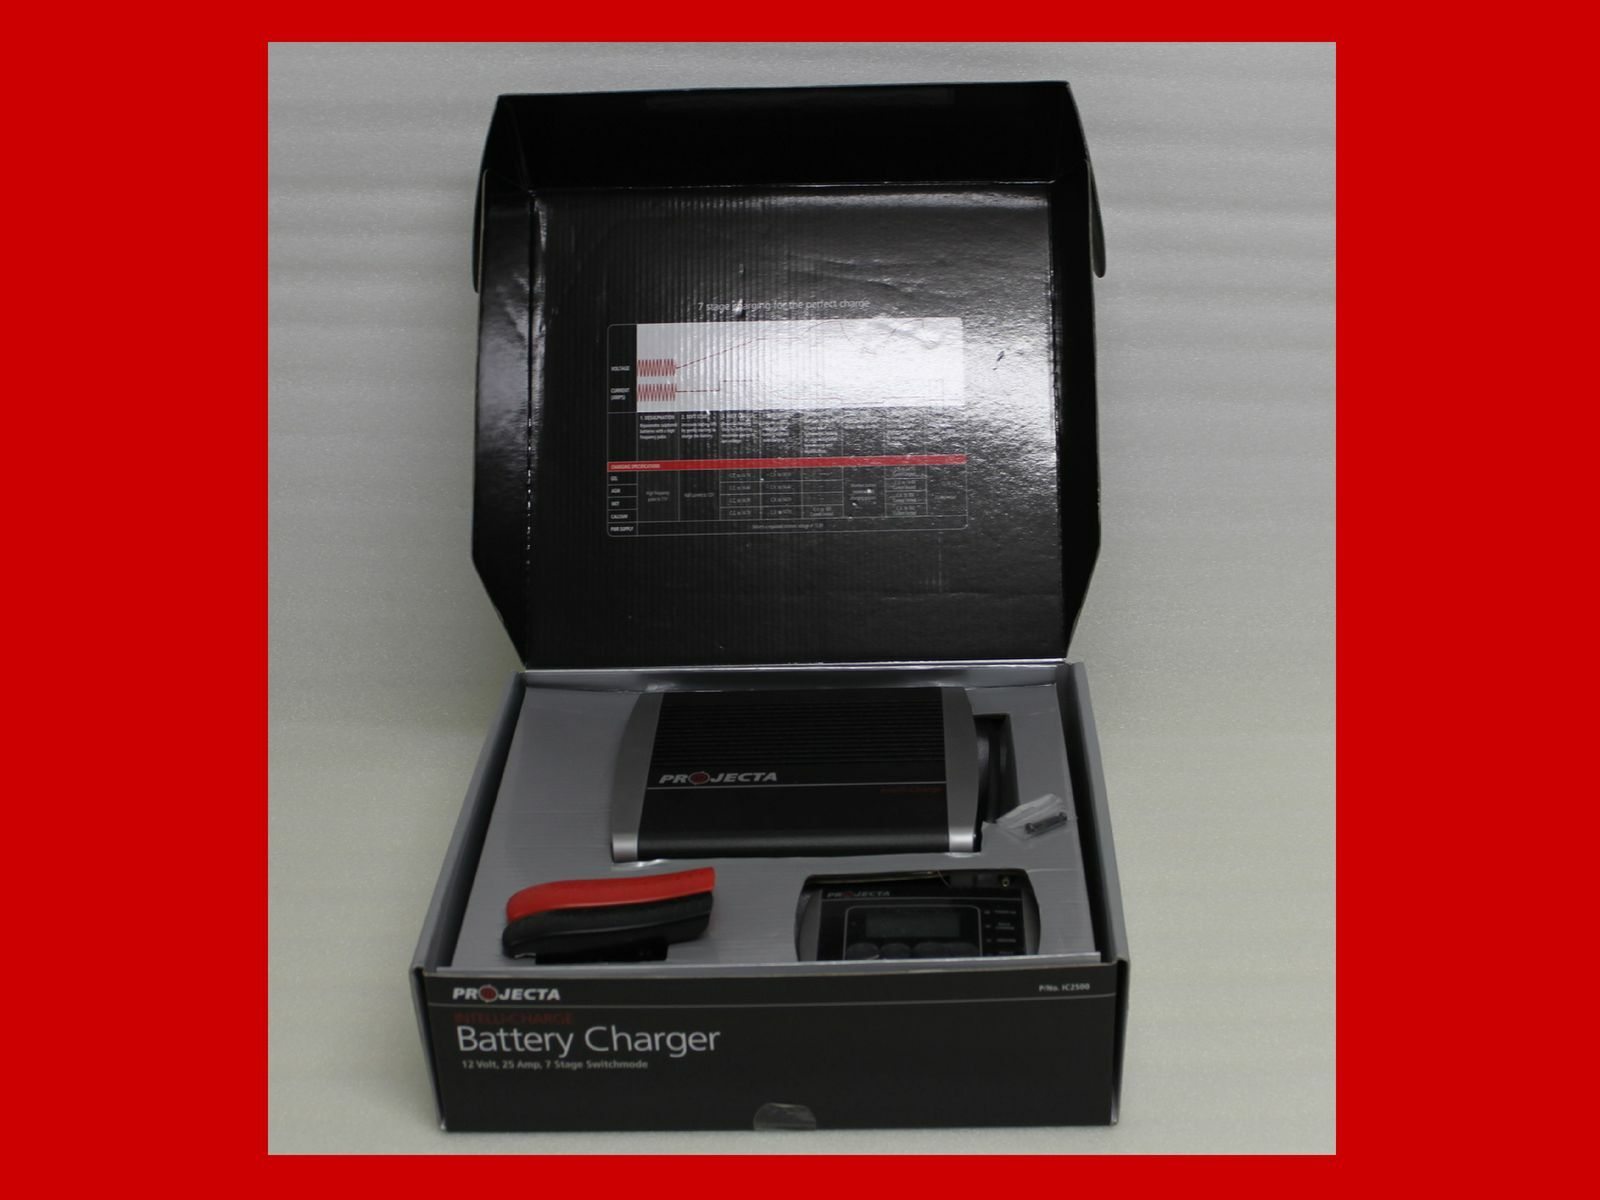 projecta ic2500 battery charger manual